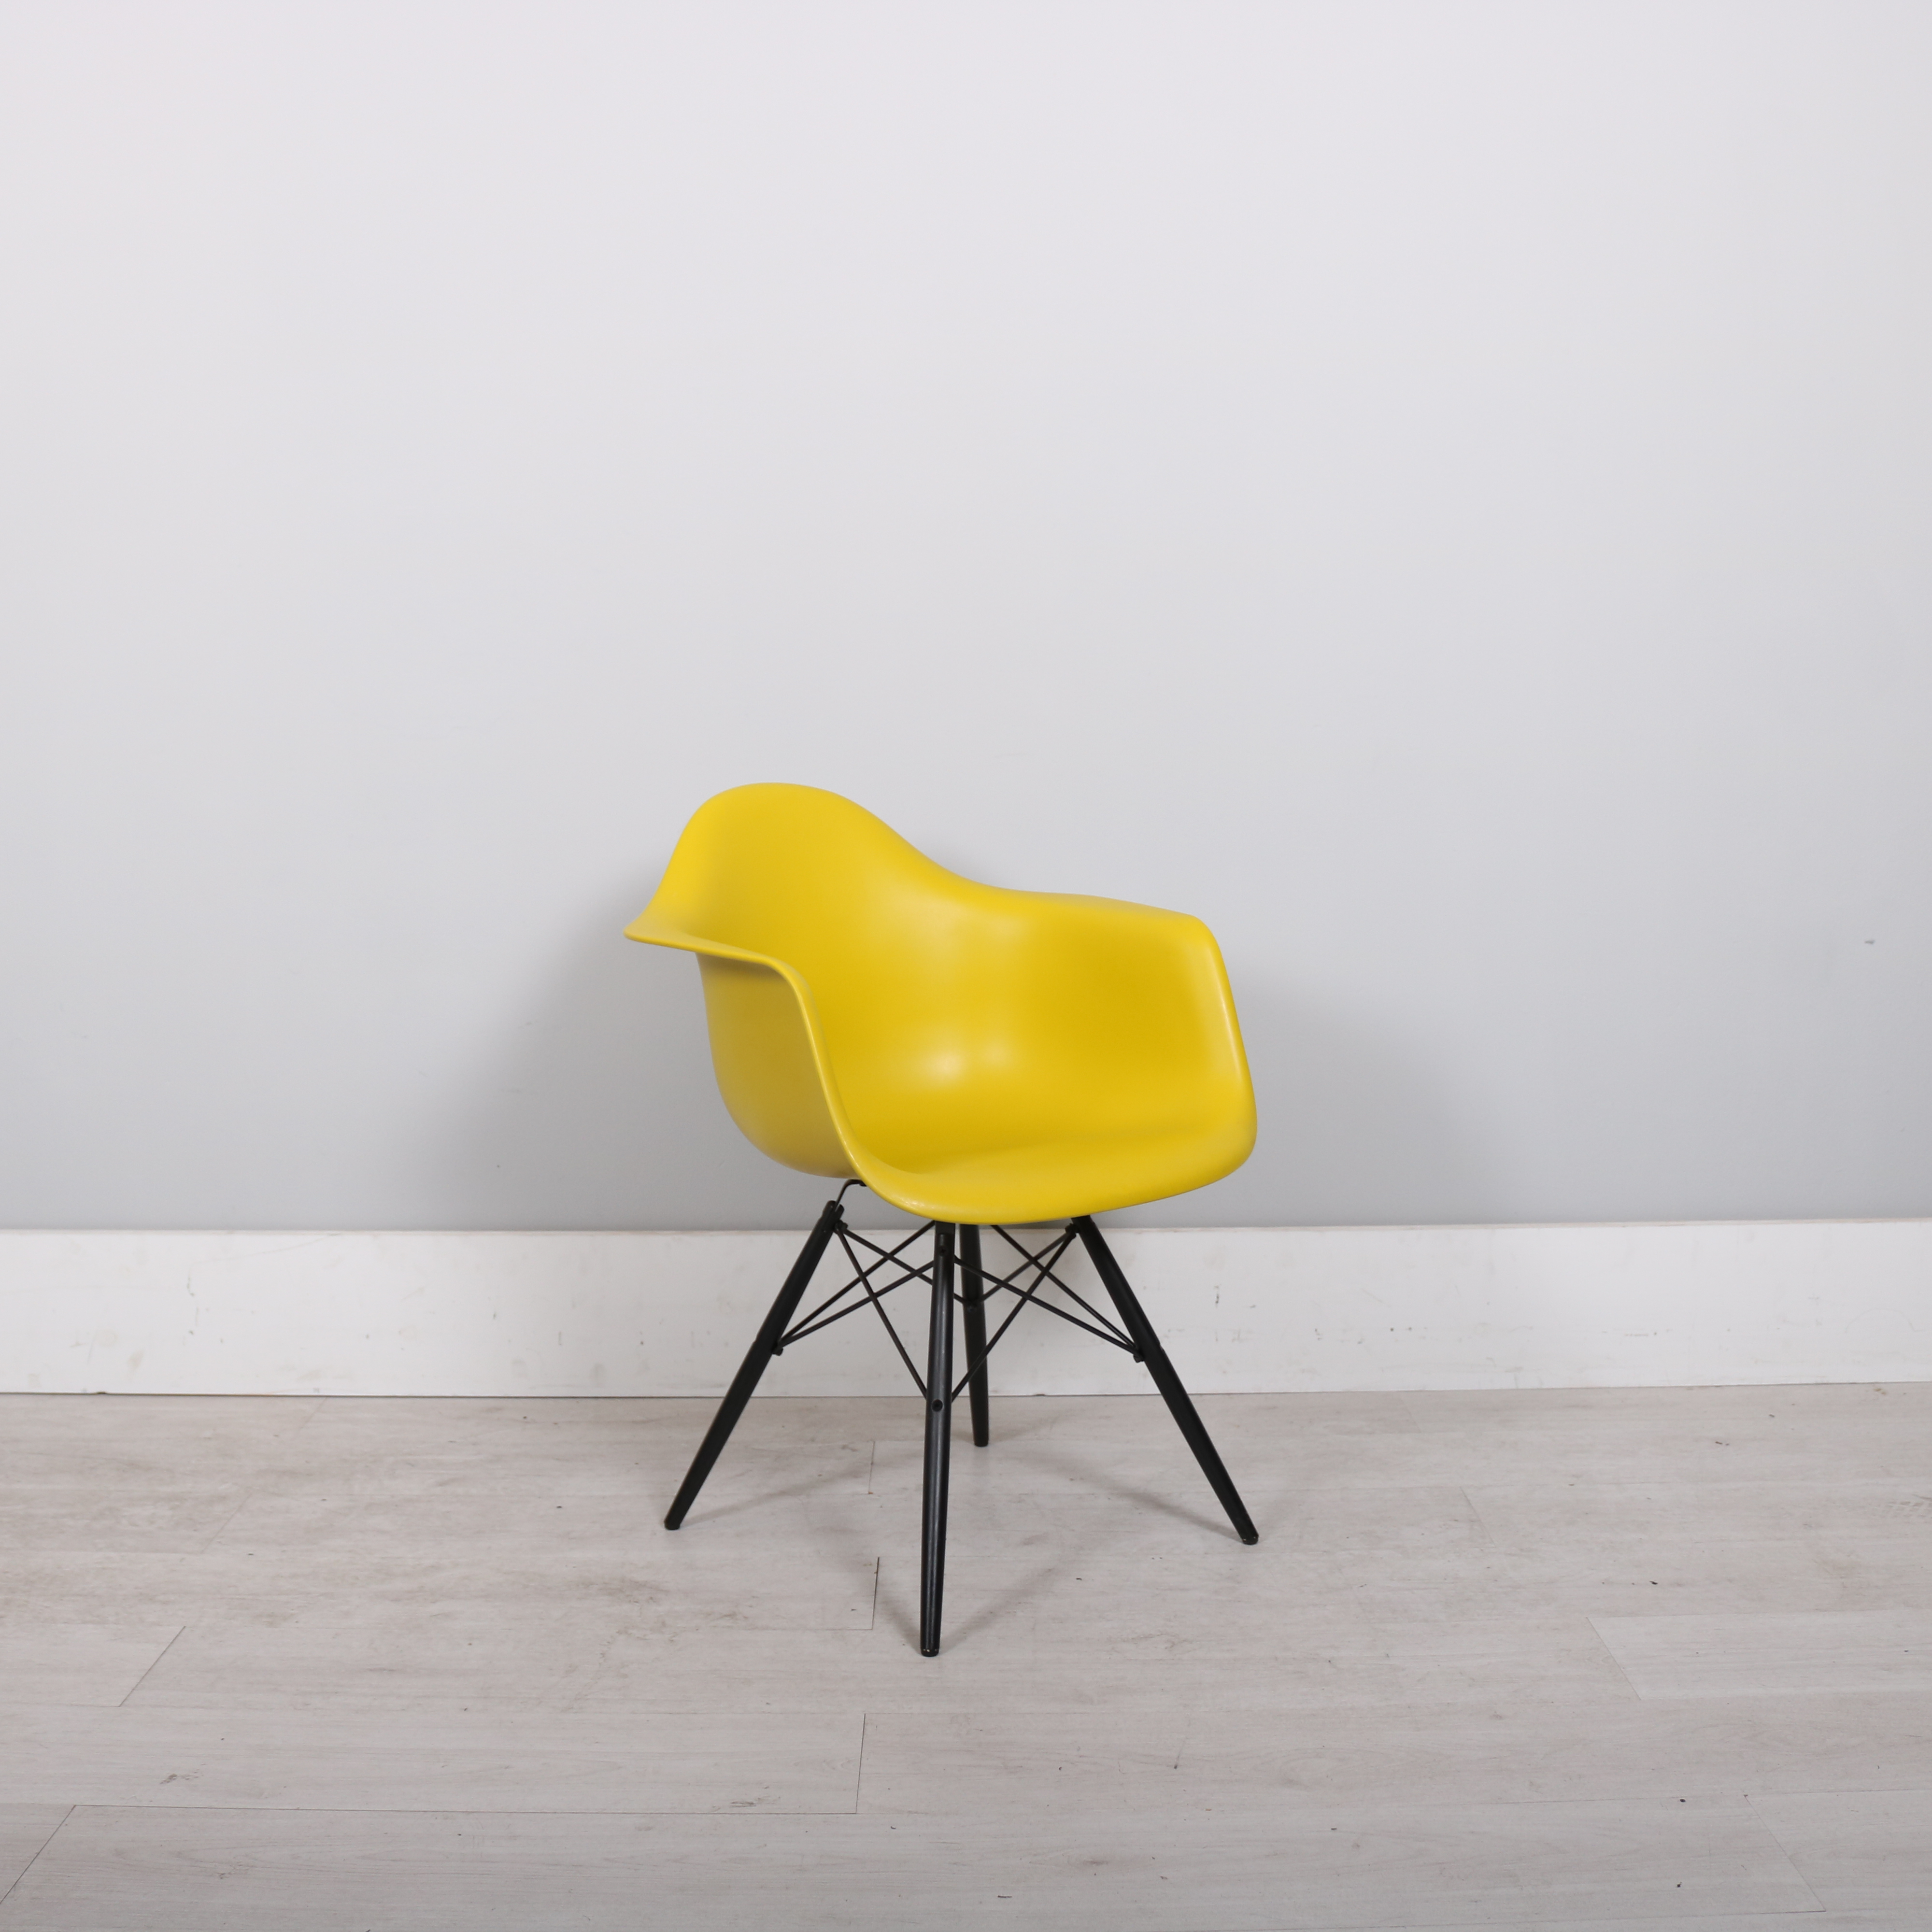 charles eames chair yellow canary yellow herman miller dax eames chair eames dsw stuhl eames. Black Bedroom Furniture Sets. Home Design Ideas